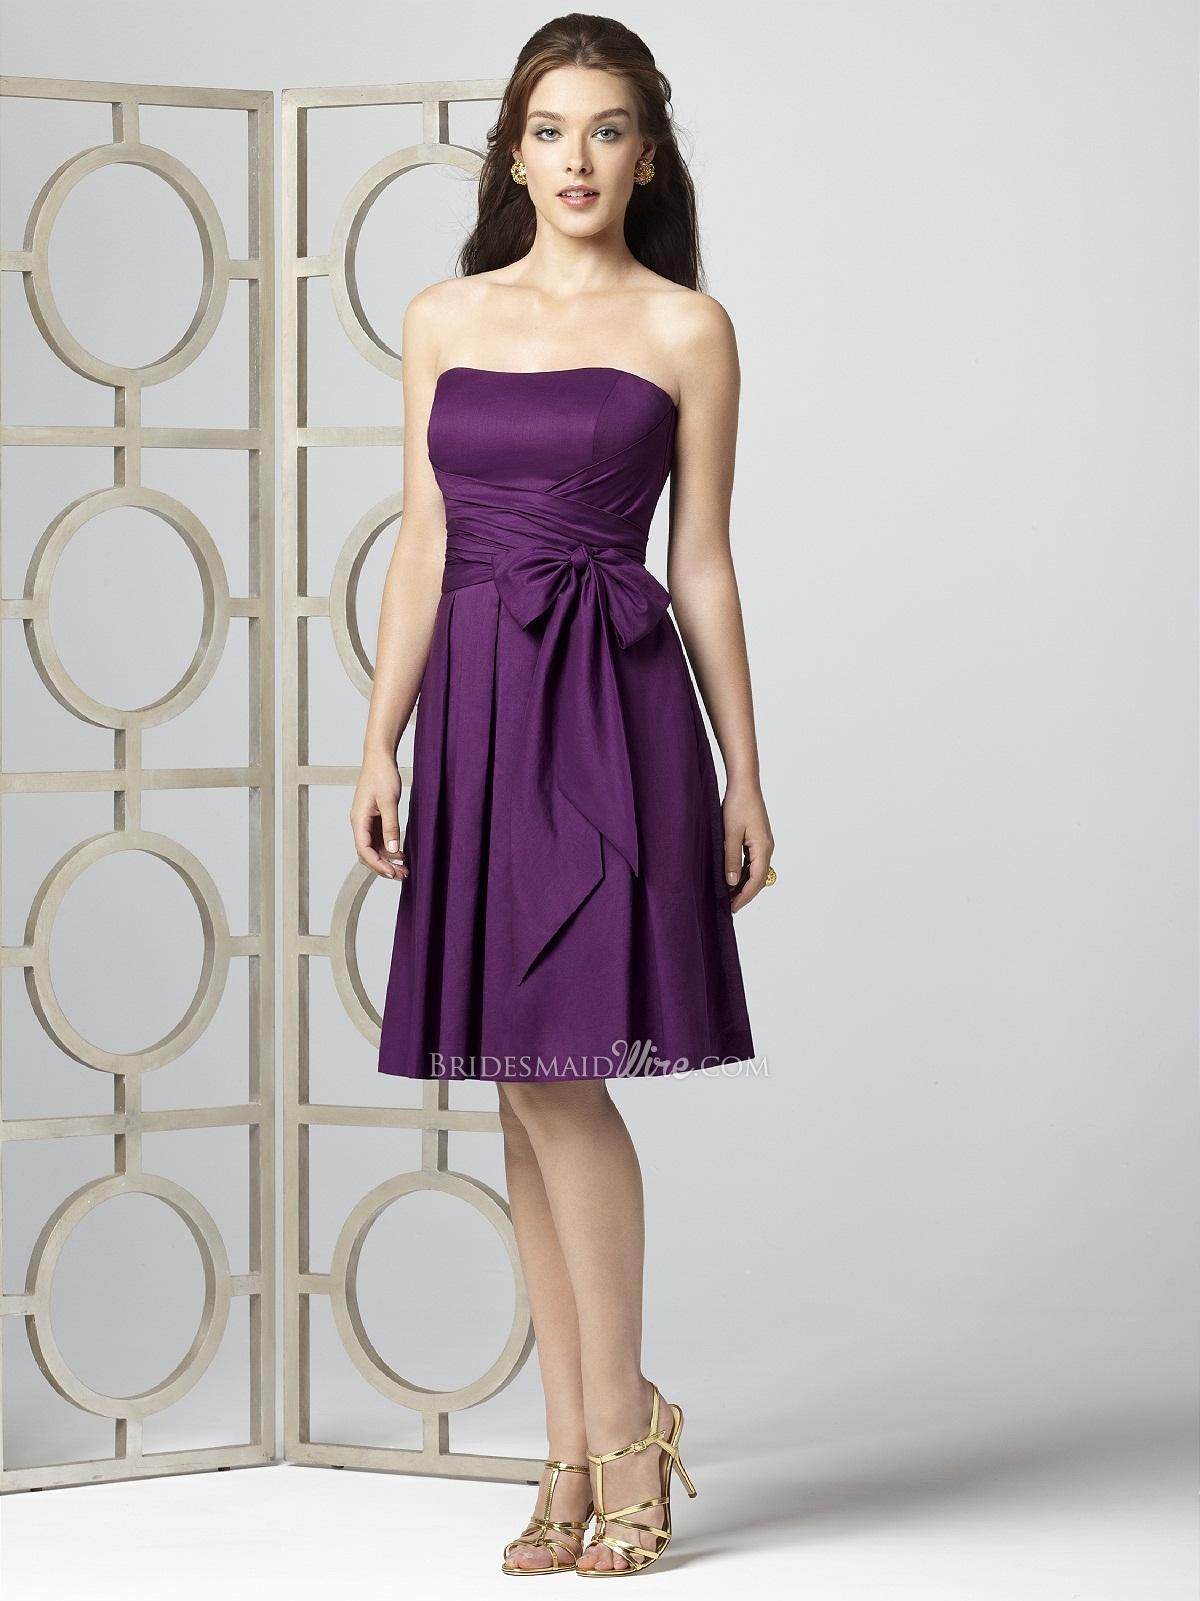 Short purple wedding dresses  eggplant strapless knee length cotton voile bridesmaid dress self